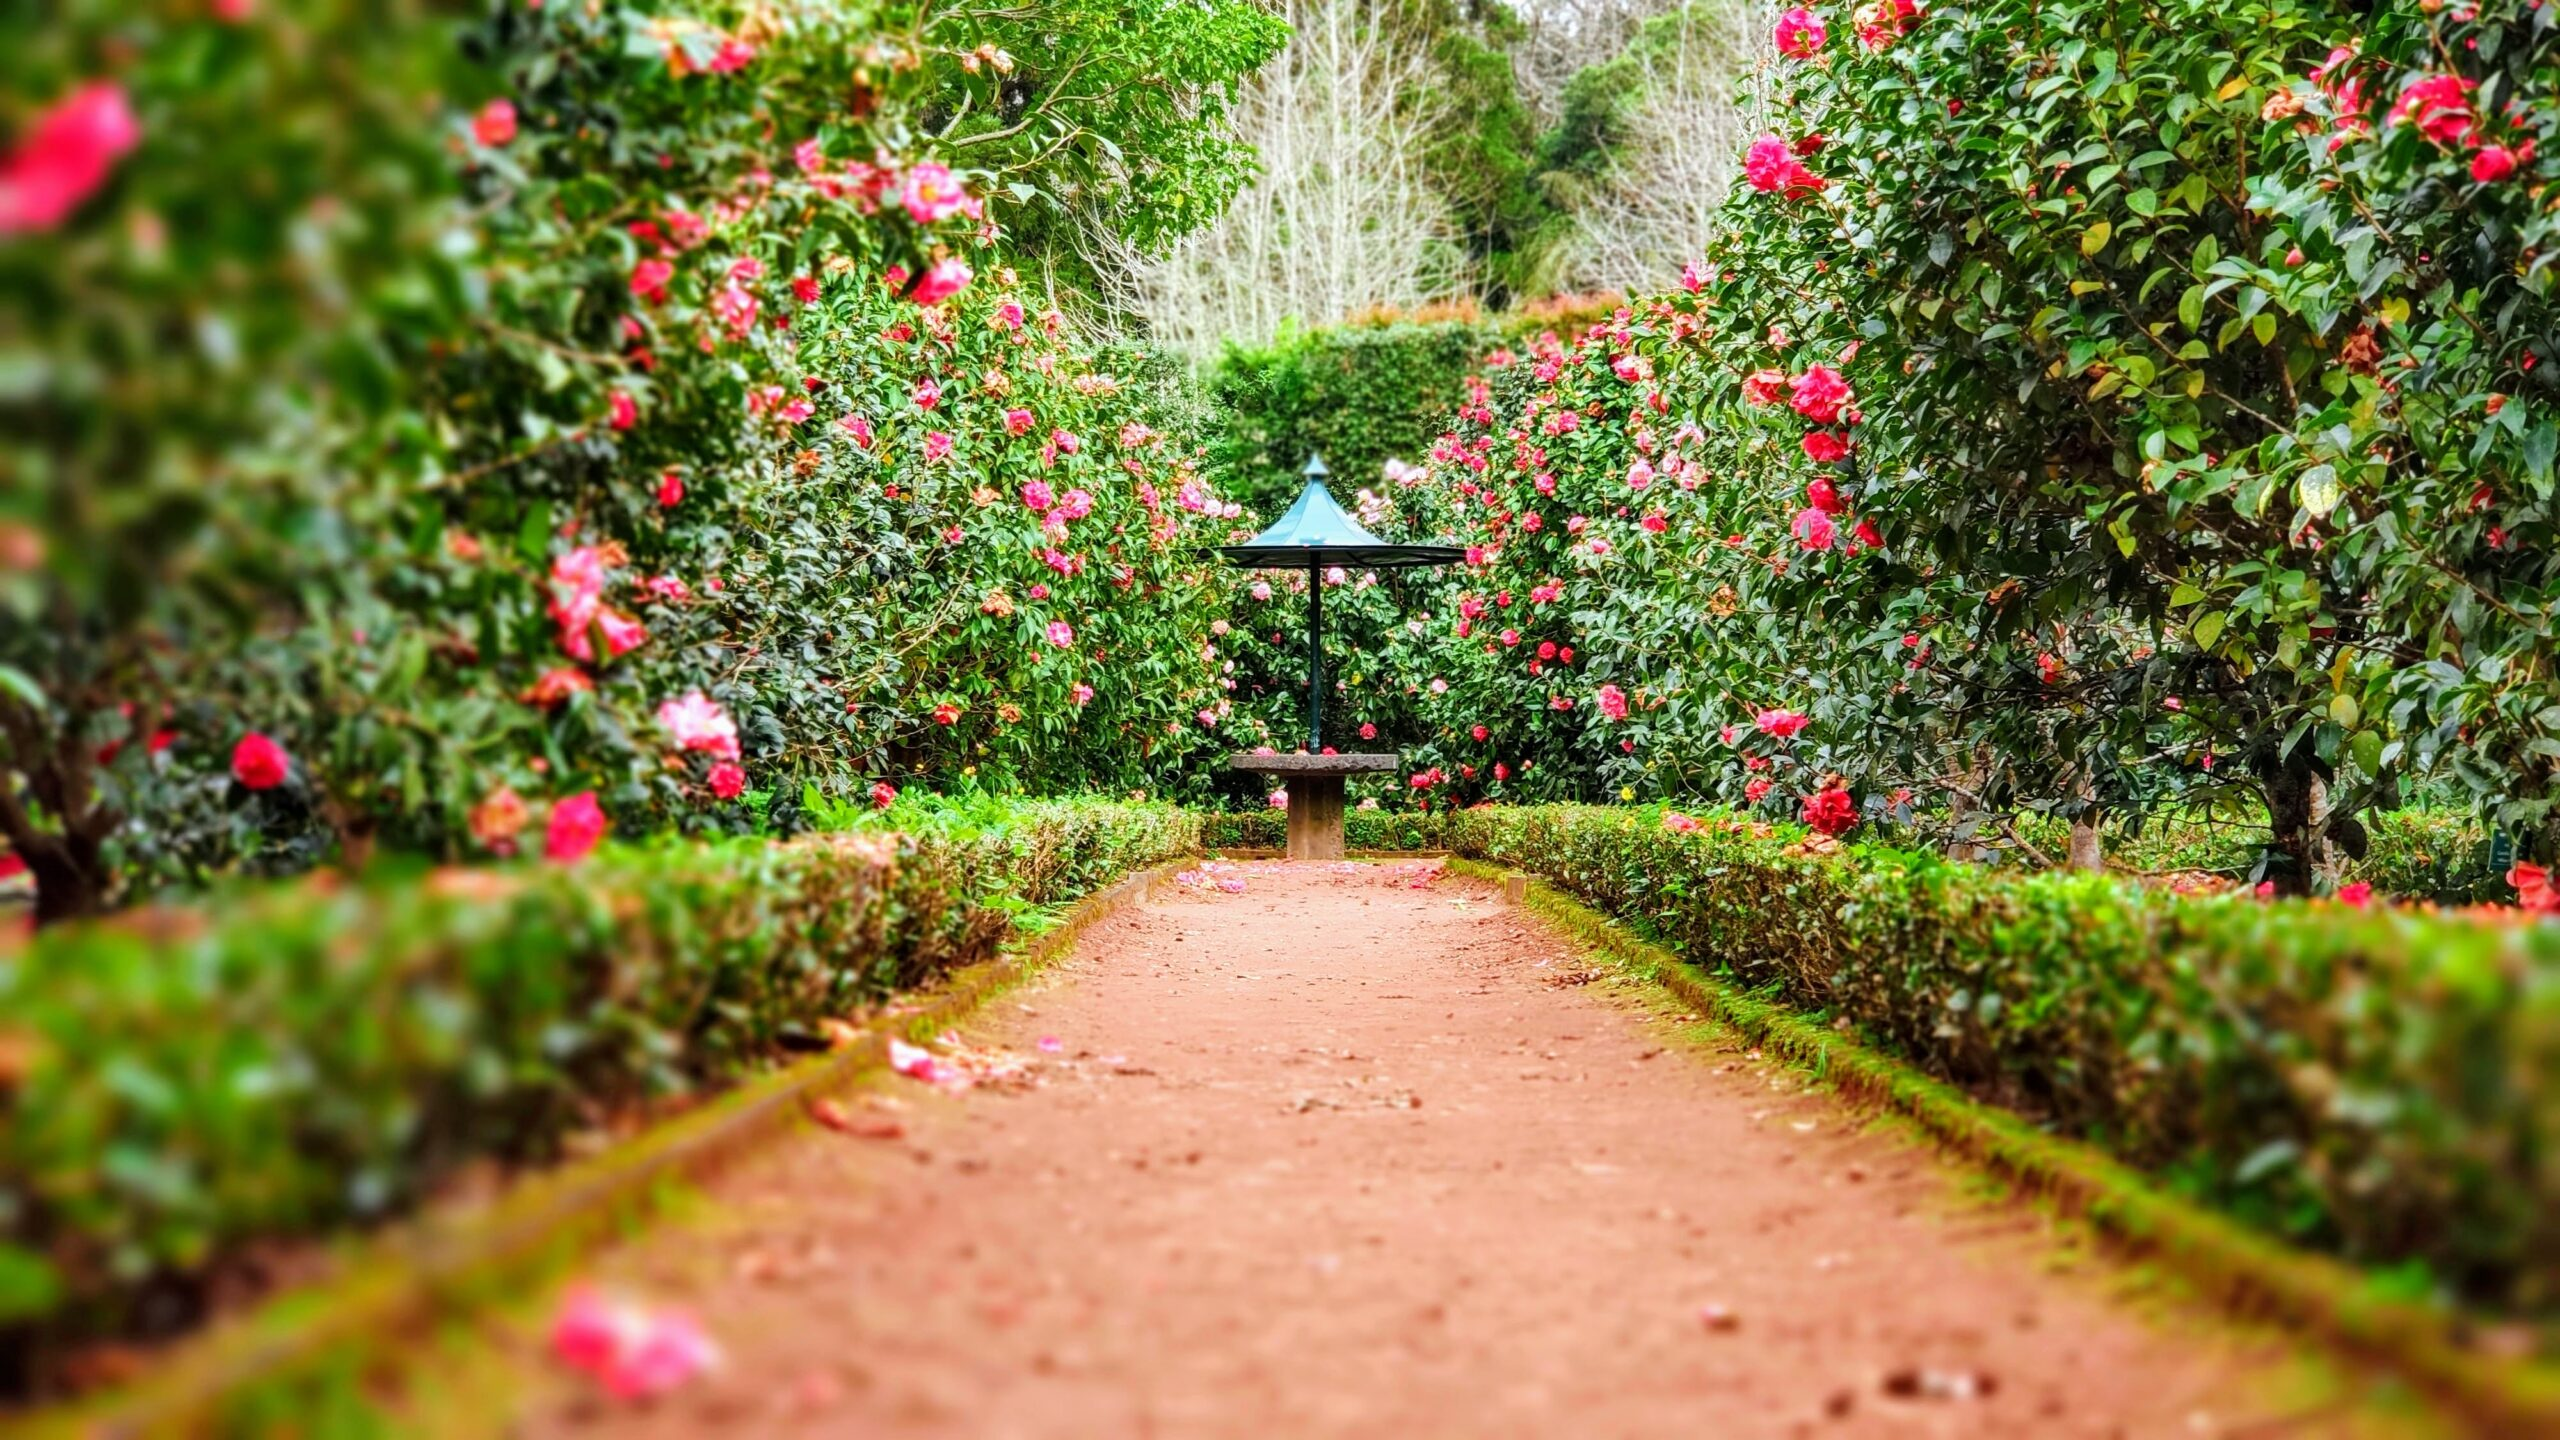 a garden with a path leading to a water feature. The path is lined with green foliage and pink flowers